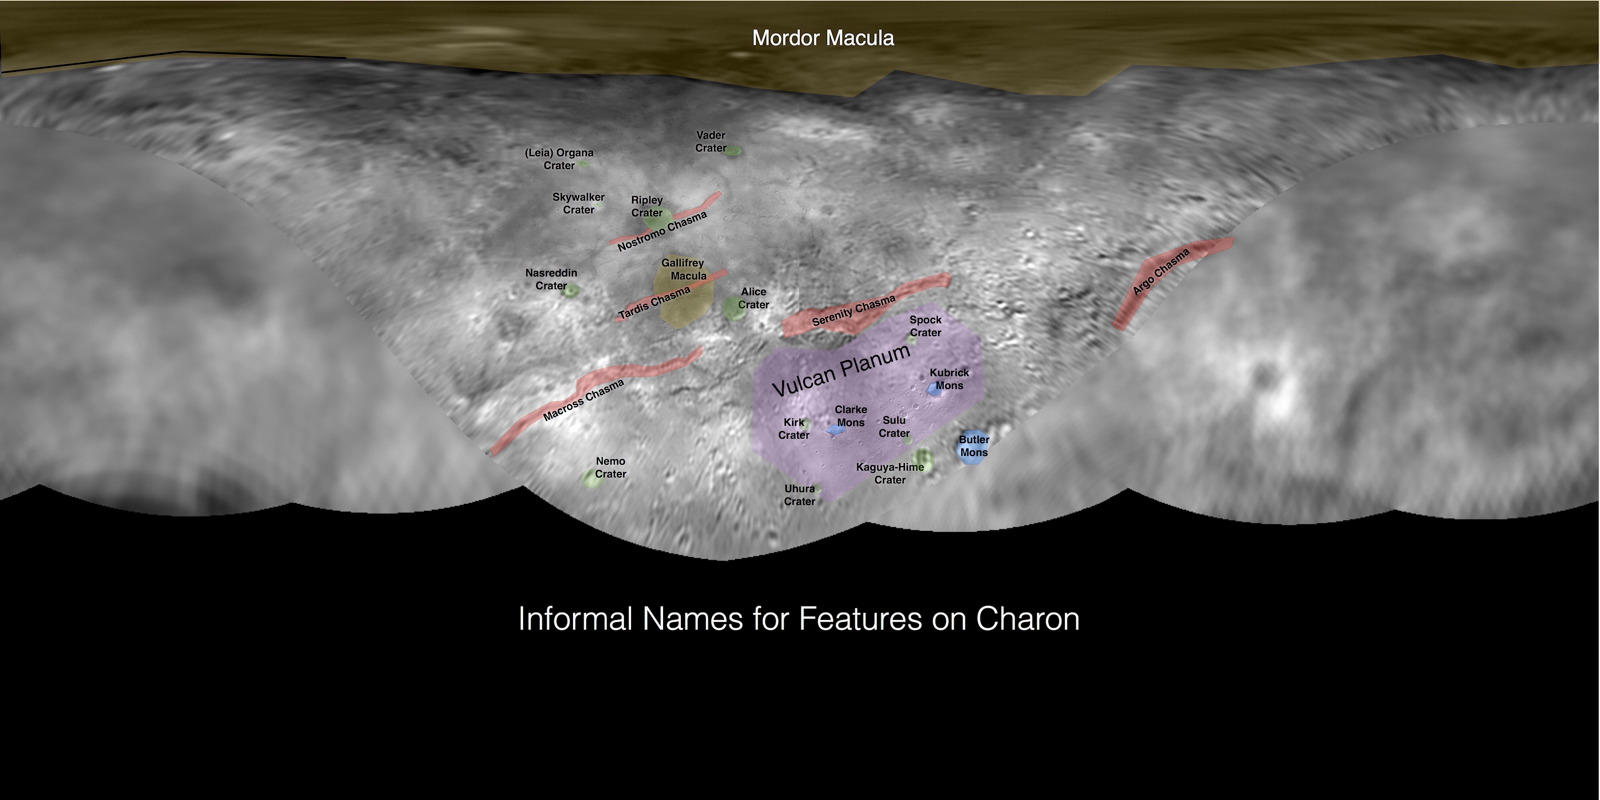 Informal Names for Features on Pluto's Moon Charon